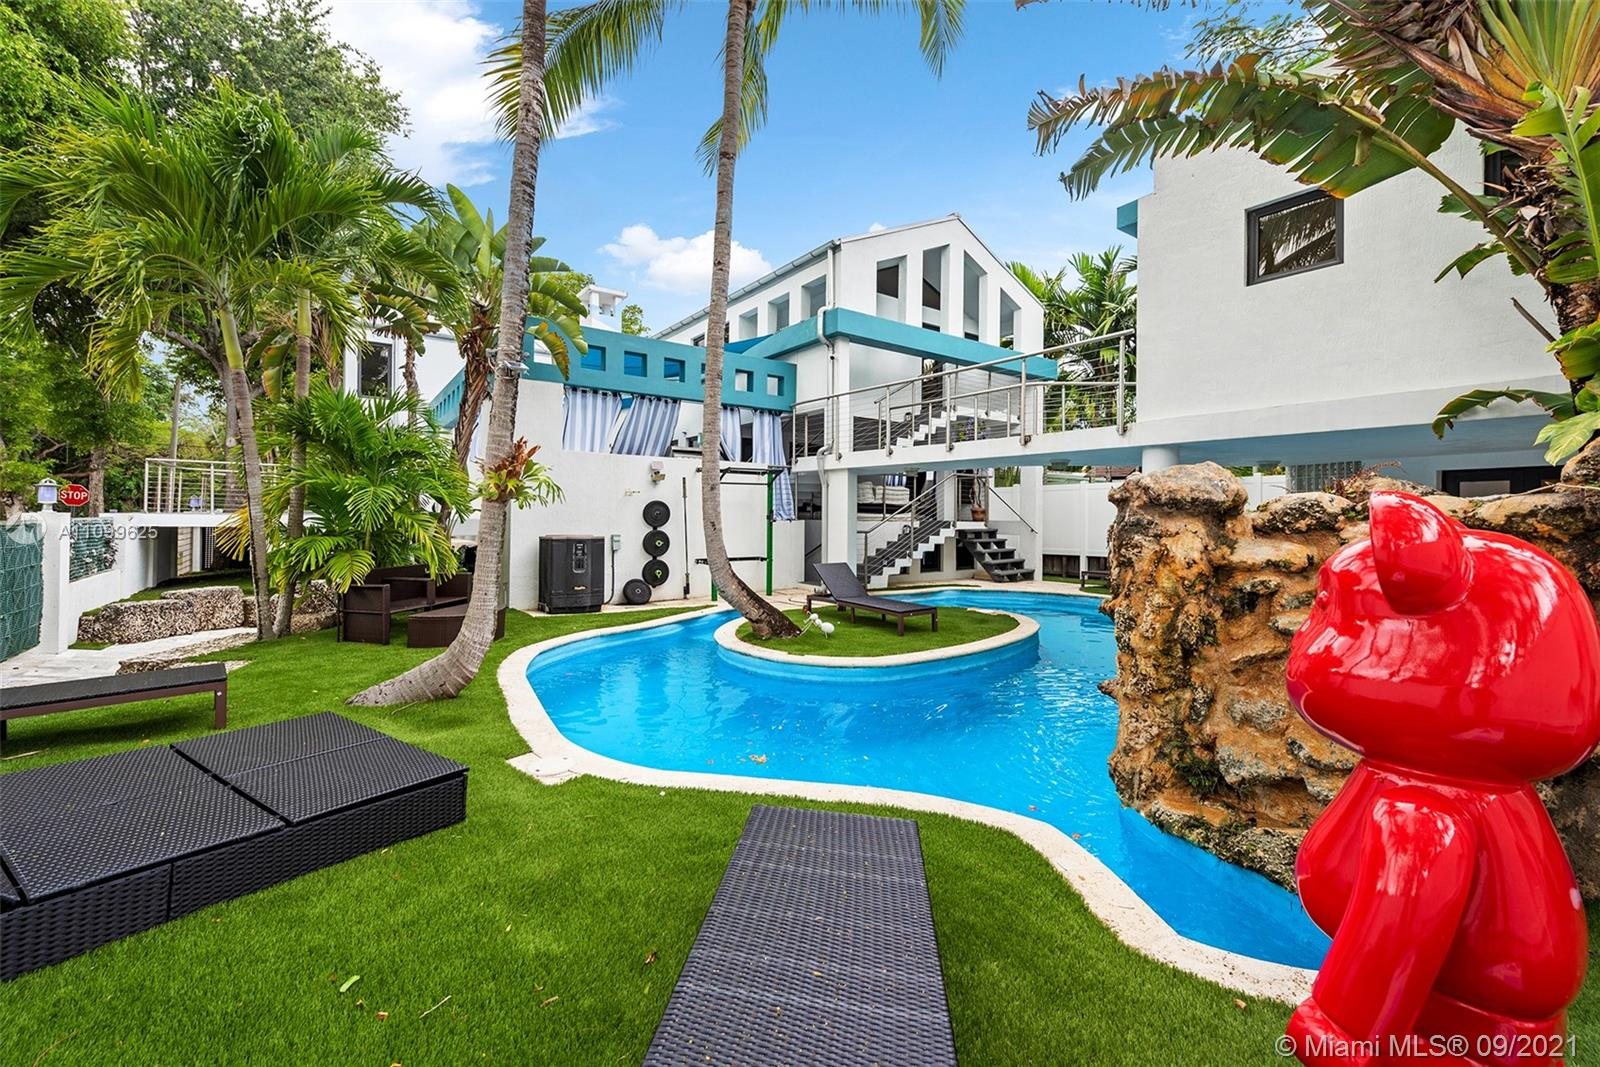 One of a kind Estate in the Heart of Coconut Grove. Ideally located on a beautiful corner lot tucked away on a quiet street close to the bay, downtown and Brickell. This ideal home is perfect for entertaining alfresco in the resort style setting back yard with summer kitchen and winding oasis pool. Main house offers 5 bedrooms 4 bathrooms with multiple entertaining areas and levels. Gorgeous new gourmet kitchen featuring designer appliances and quartz counter tops. Spacious Master suite with master bath offers a relaxing view of tree canopies. Detached guest cottage offers 2 levels with kitchenette.